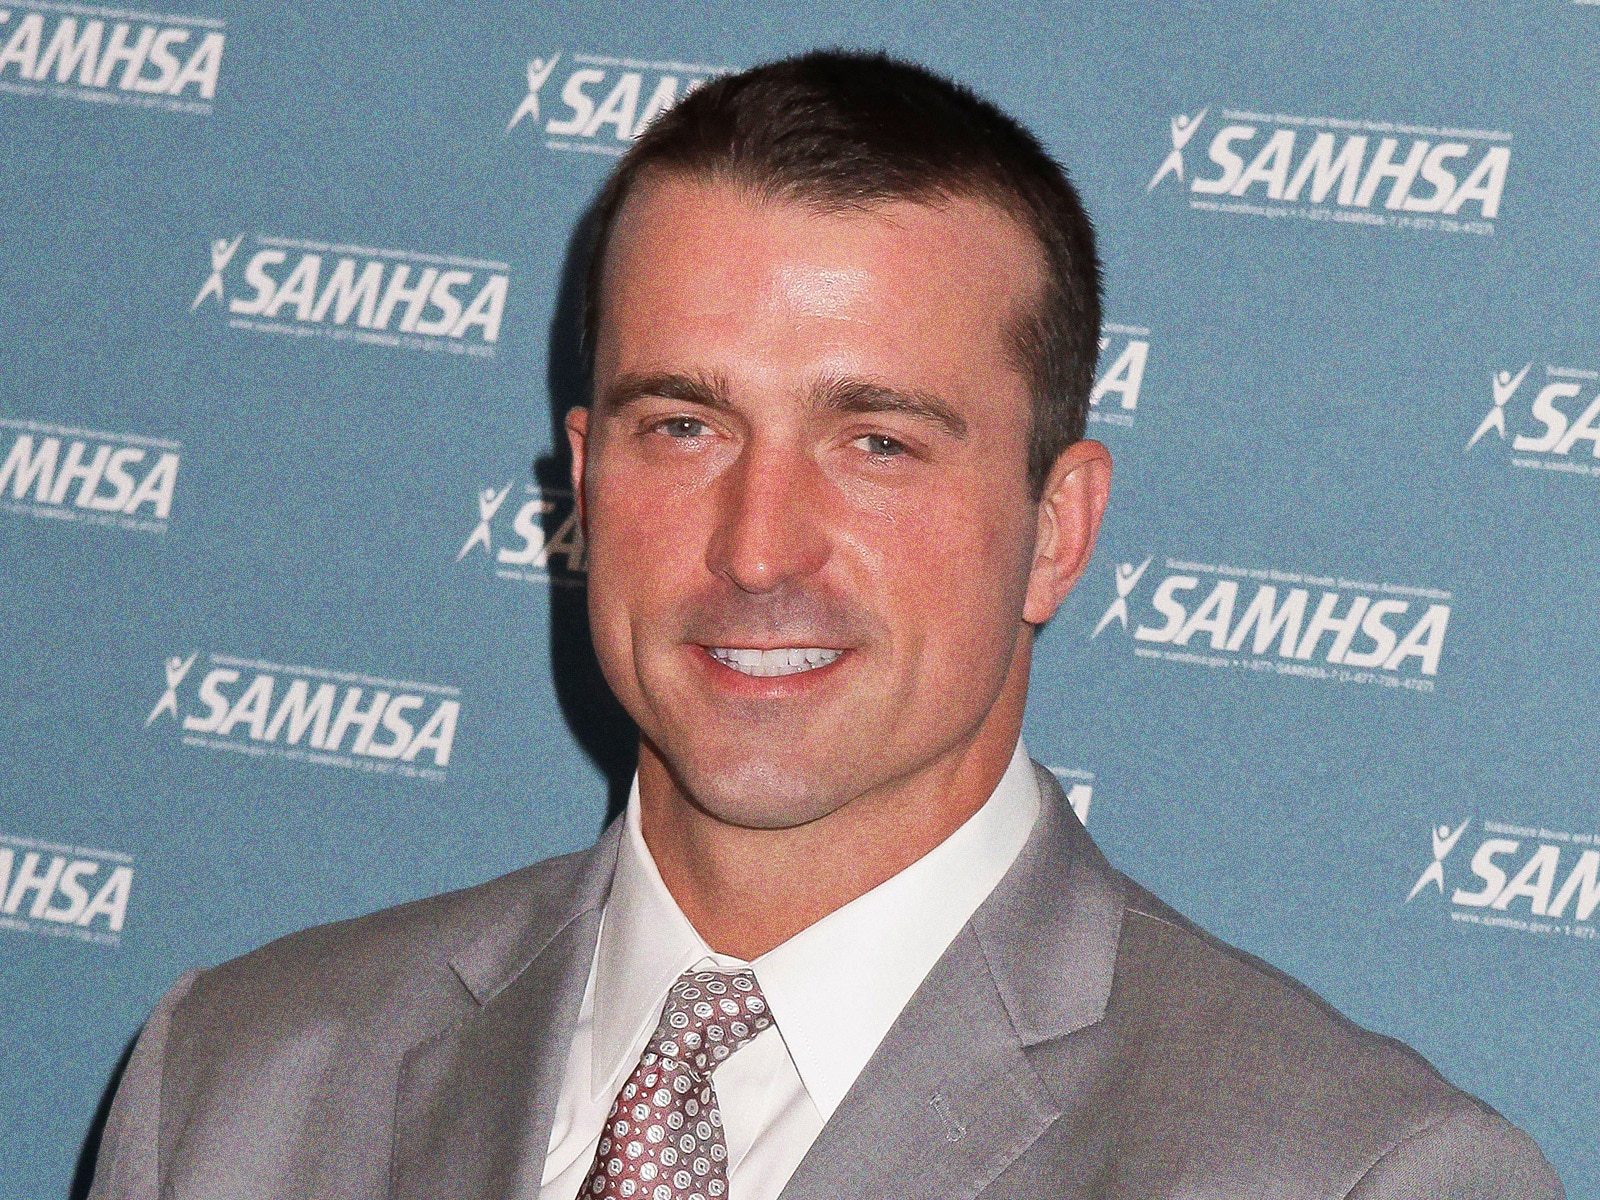 Chris Herren Speaks of Drug Addiction - Freedom From Addiction